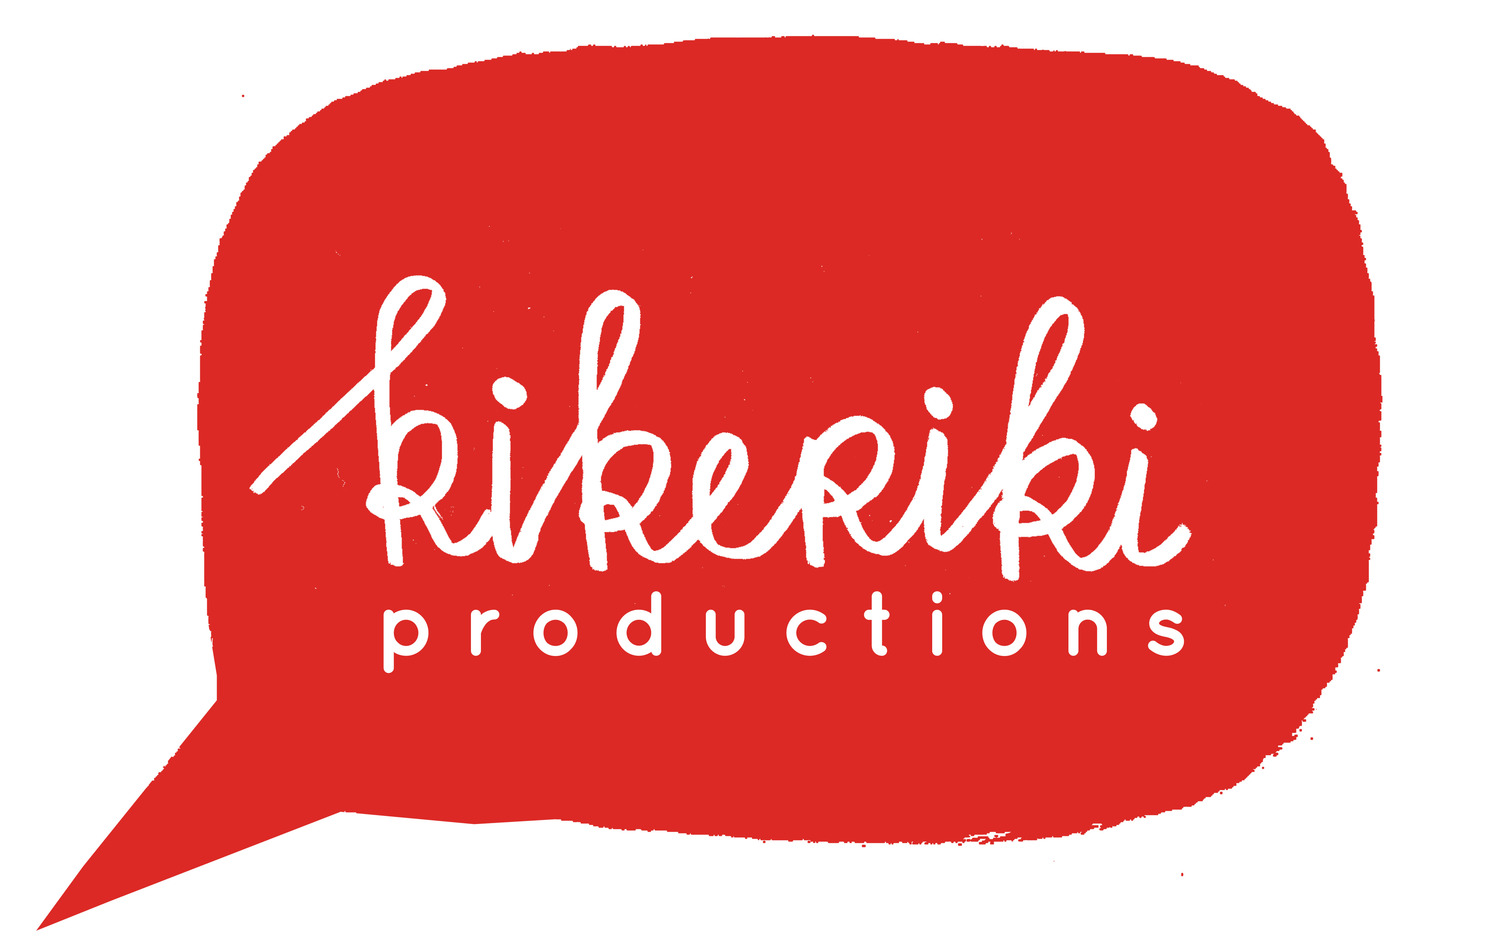 Kikeriki Productions